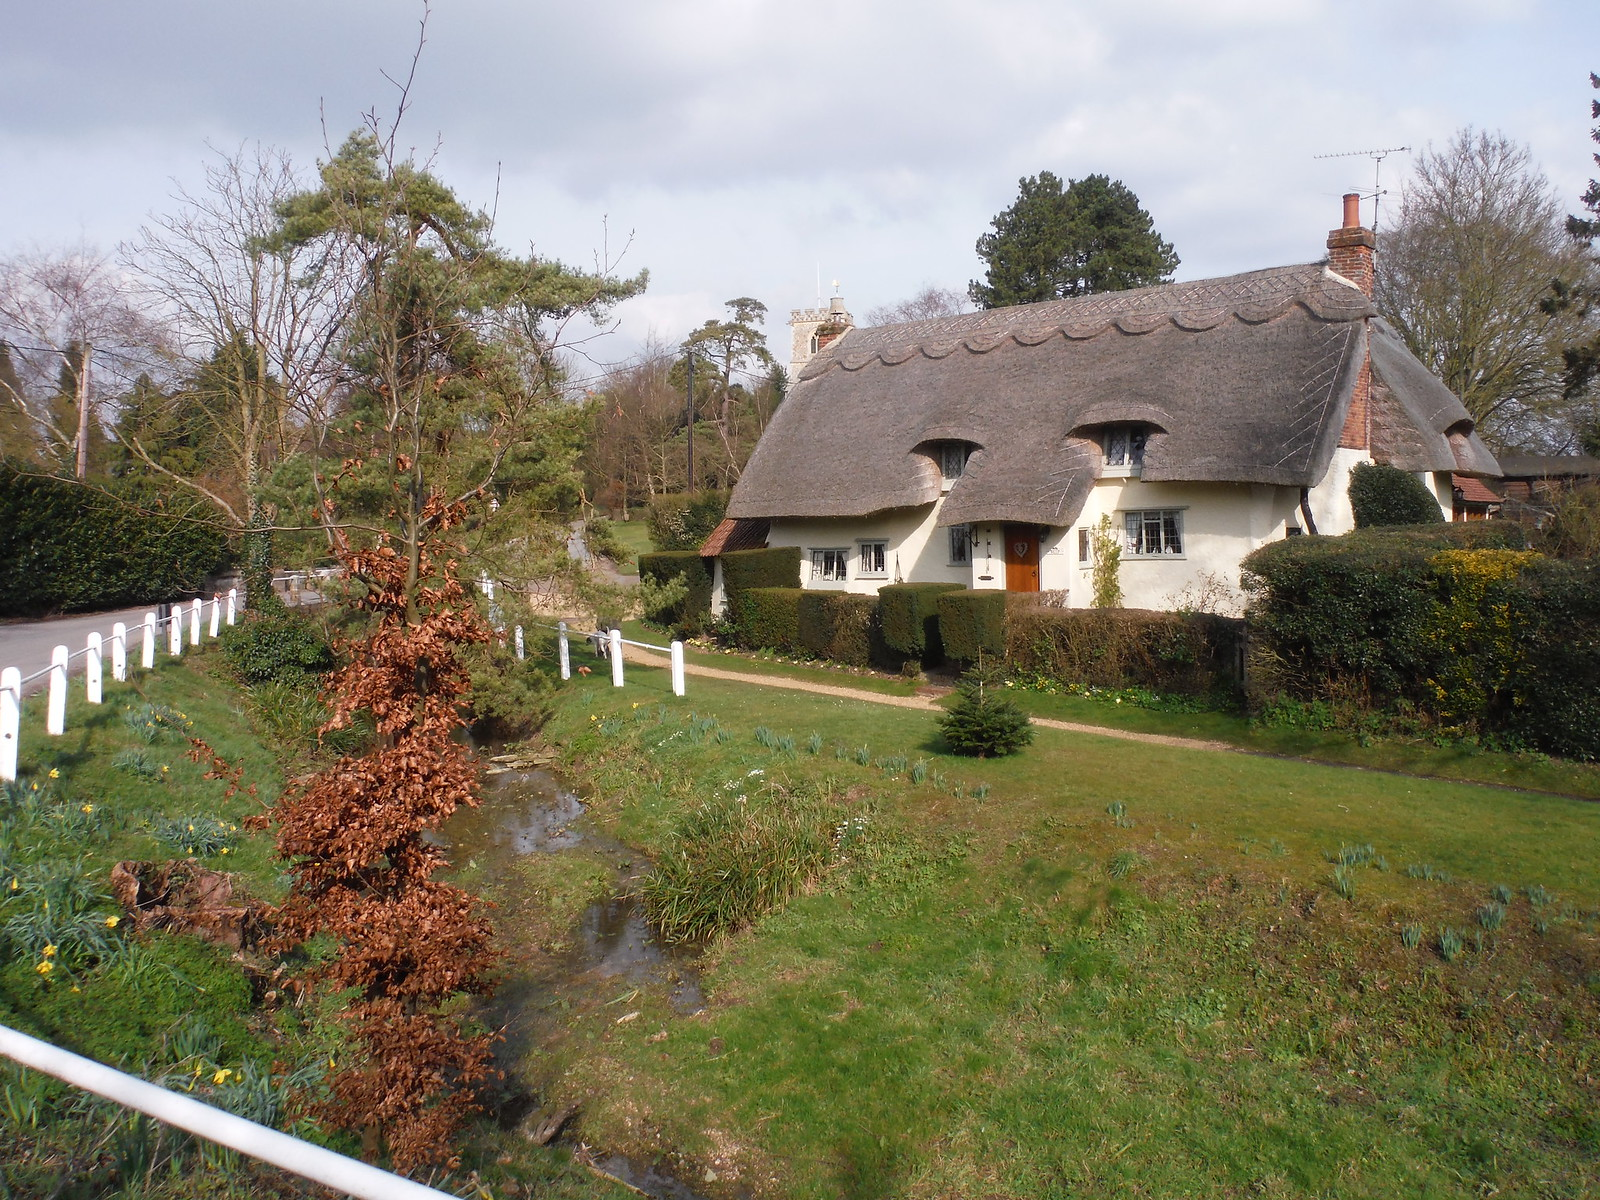 House in Arkesden SWC Walk 116 Wendens Ambo [Audley End station] Circular